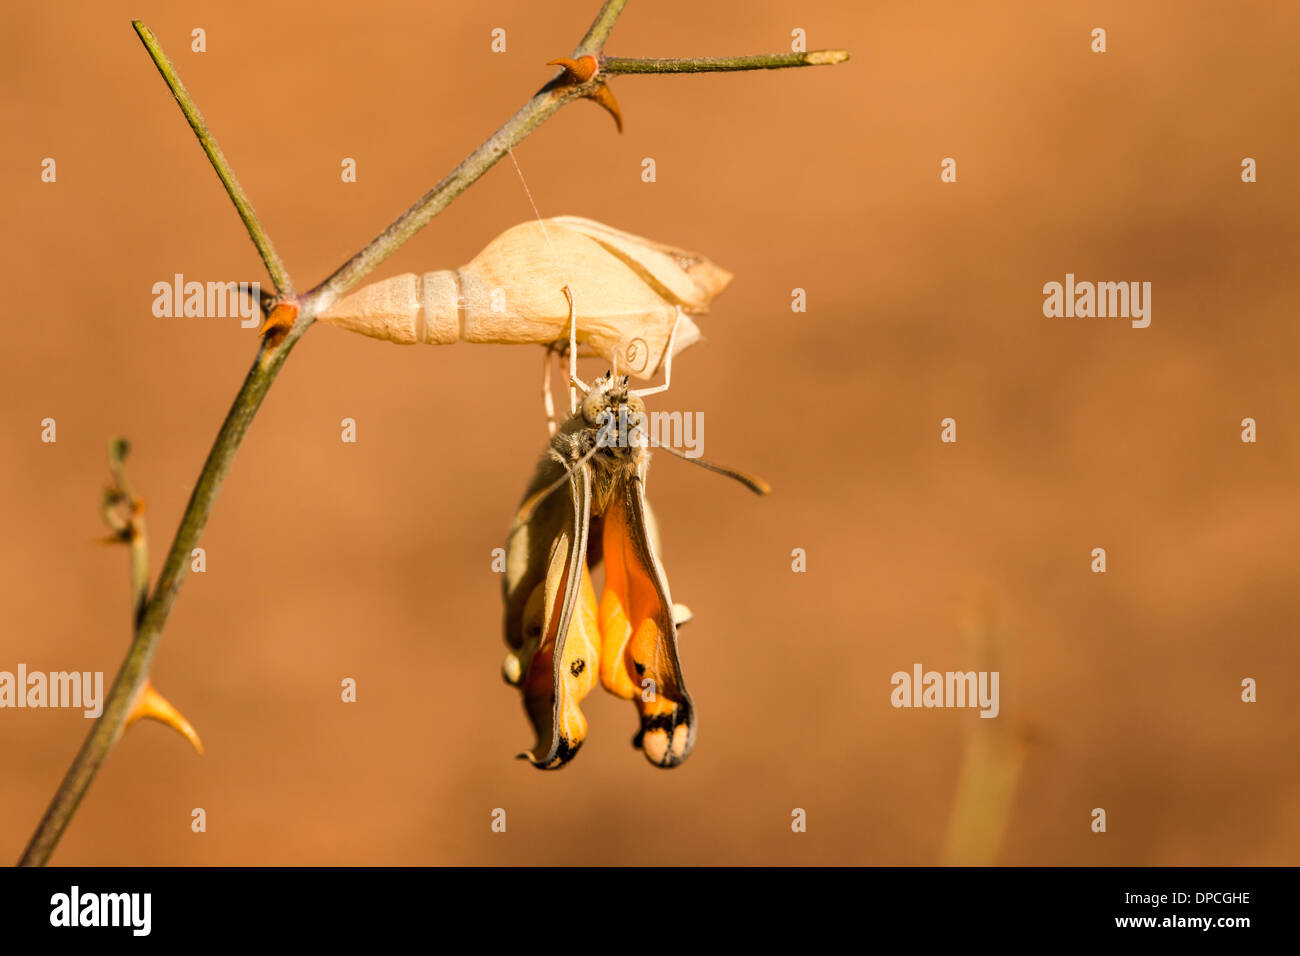 A set of 3 images of Large Salmon Arab butterfly, (Colotis fausta syn Madais fausta) as it emerges from its cocoon. - Stock Image